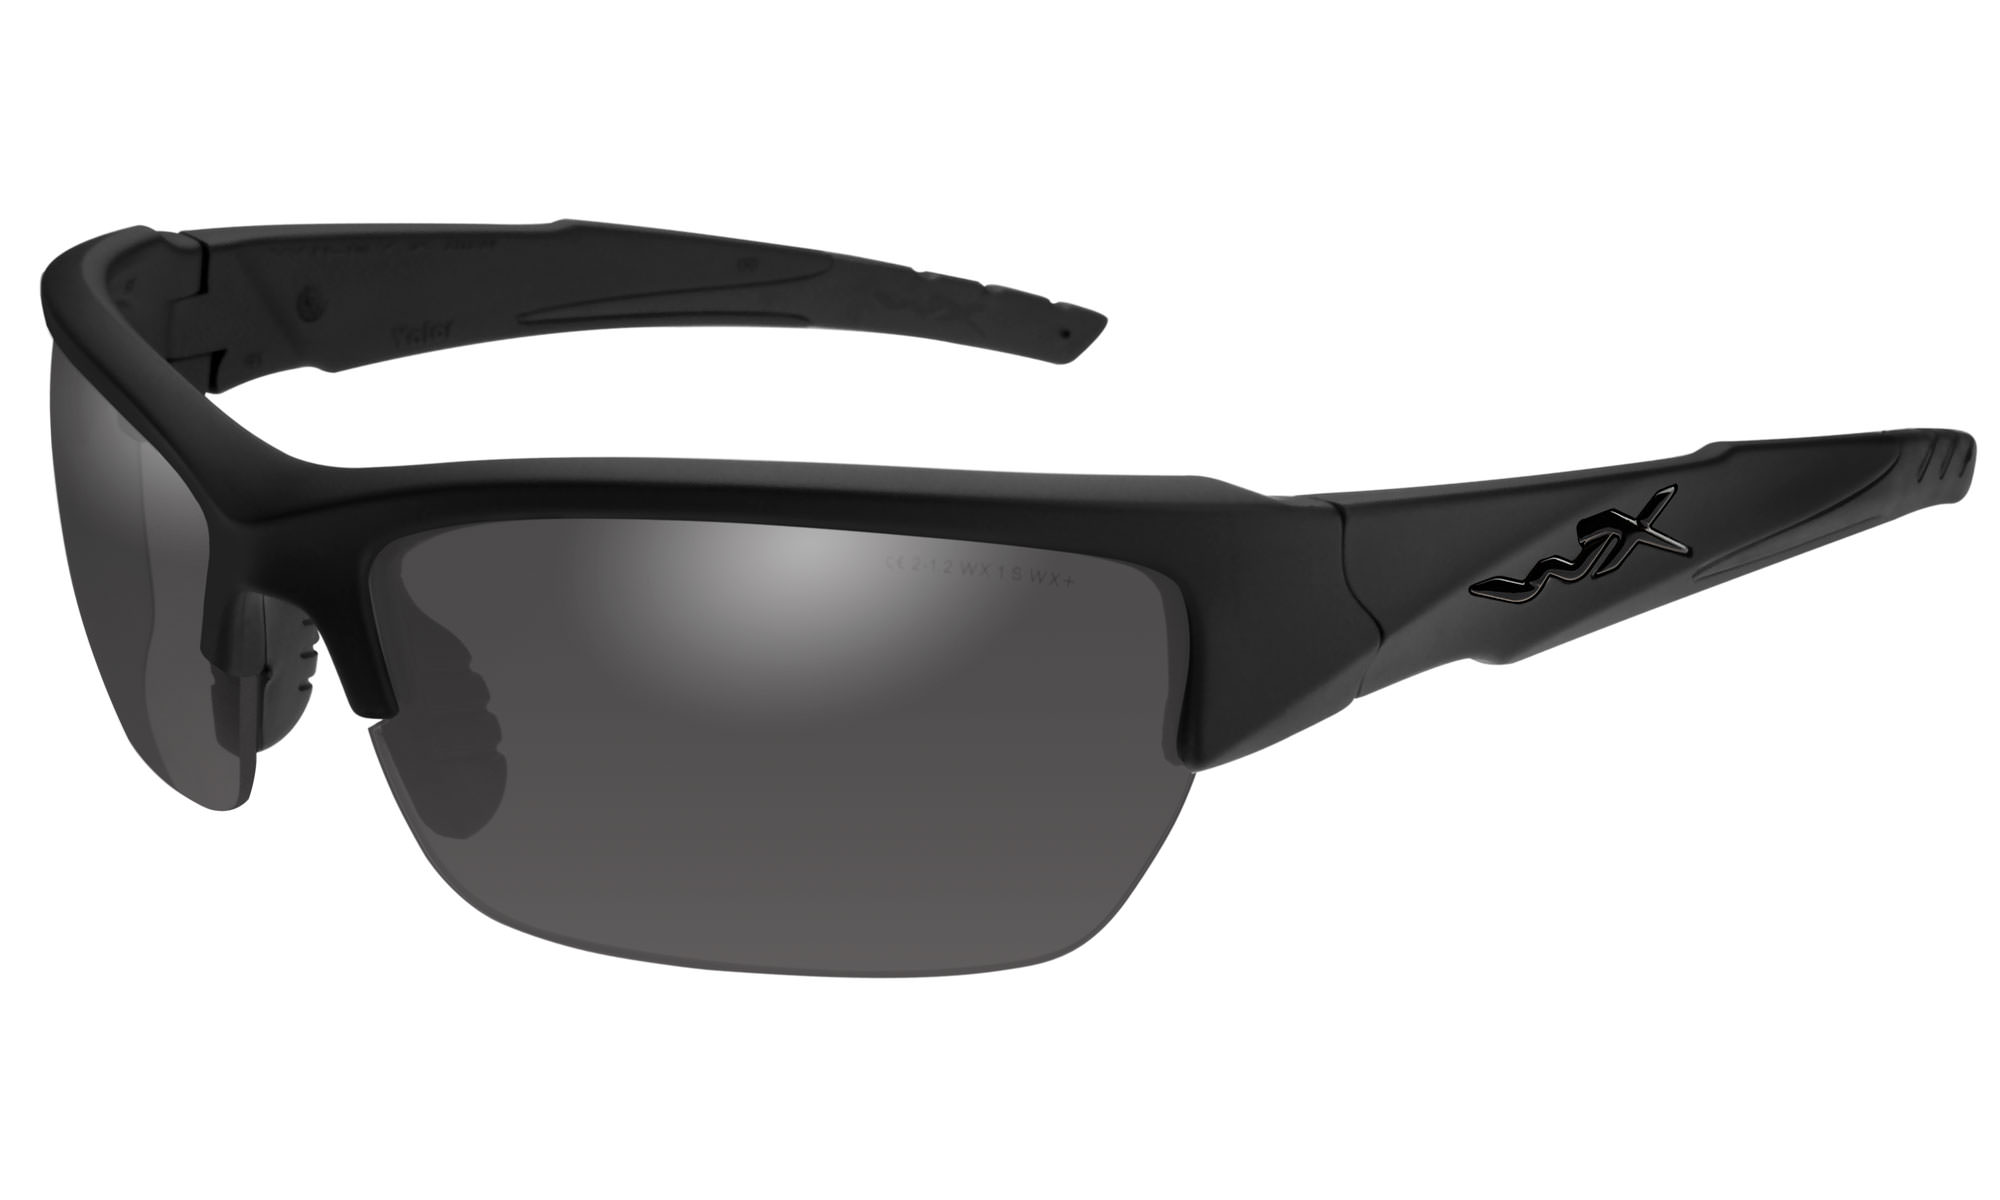 0212b639ff1ed Wiley-X WX Omega Matte Black with Smoke Grey Lenses